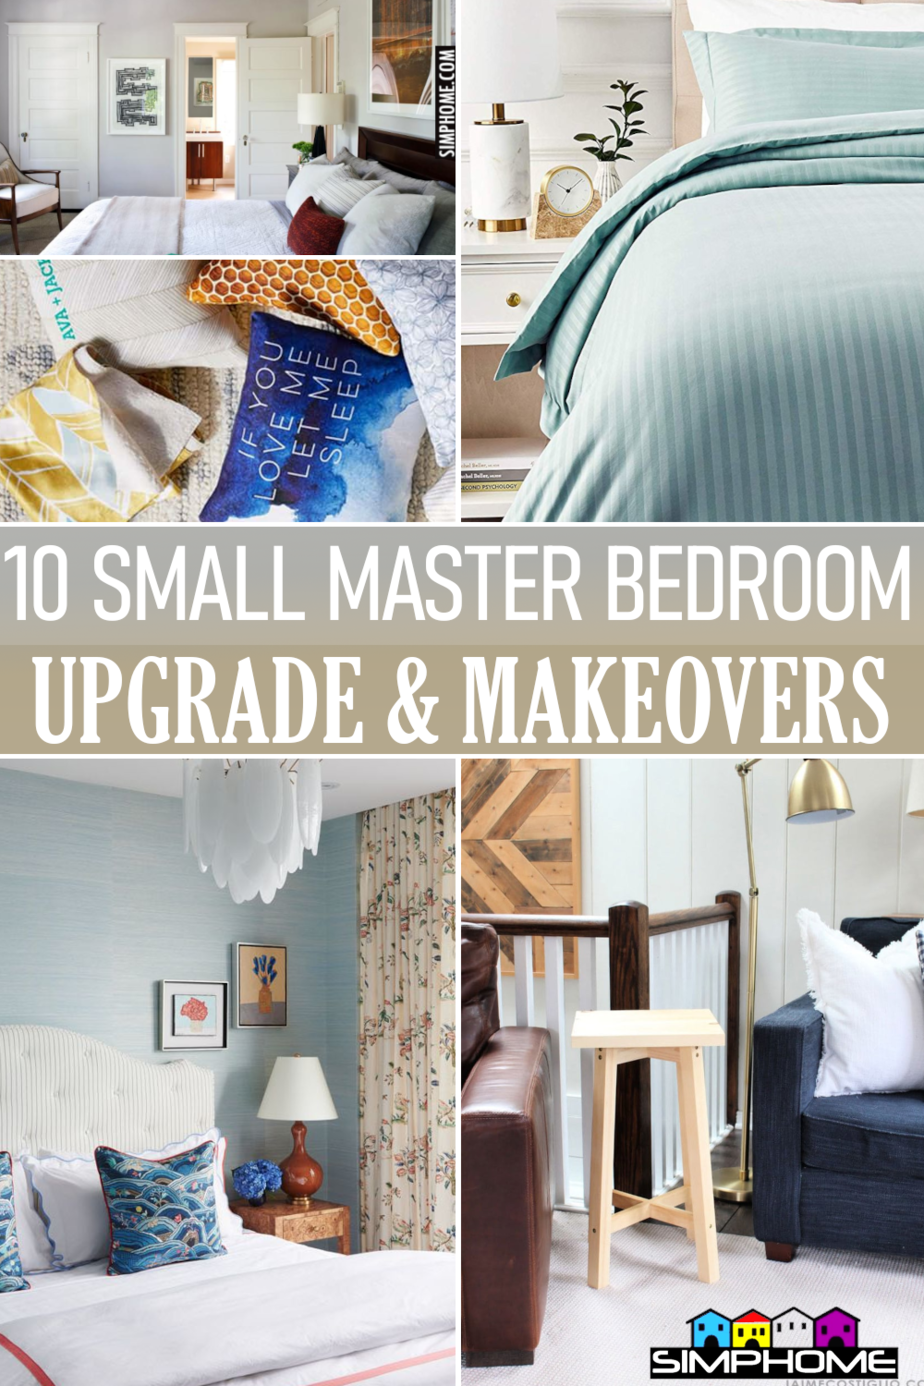 10 Small Master Bedroom Upgrade Ideas by Simphome.comFeatured